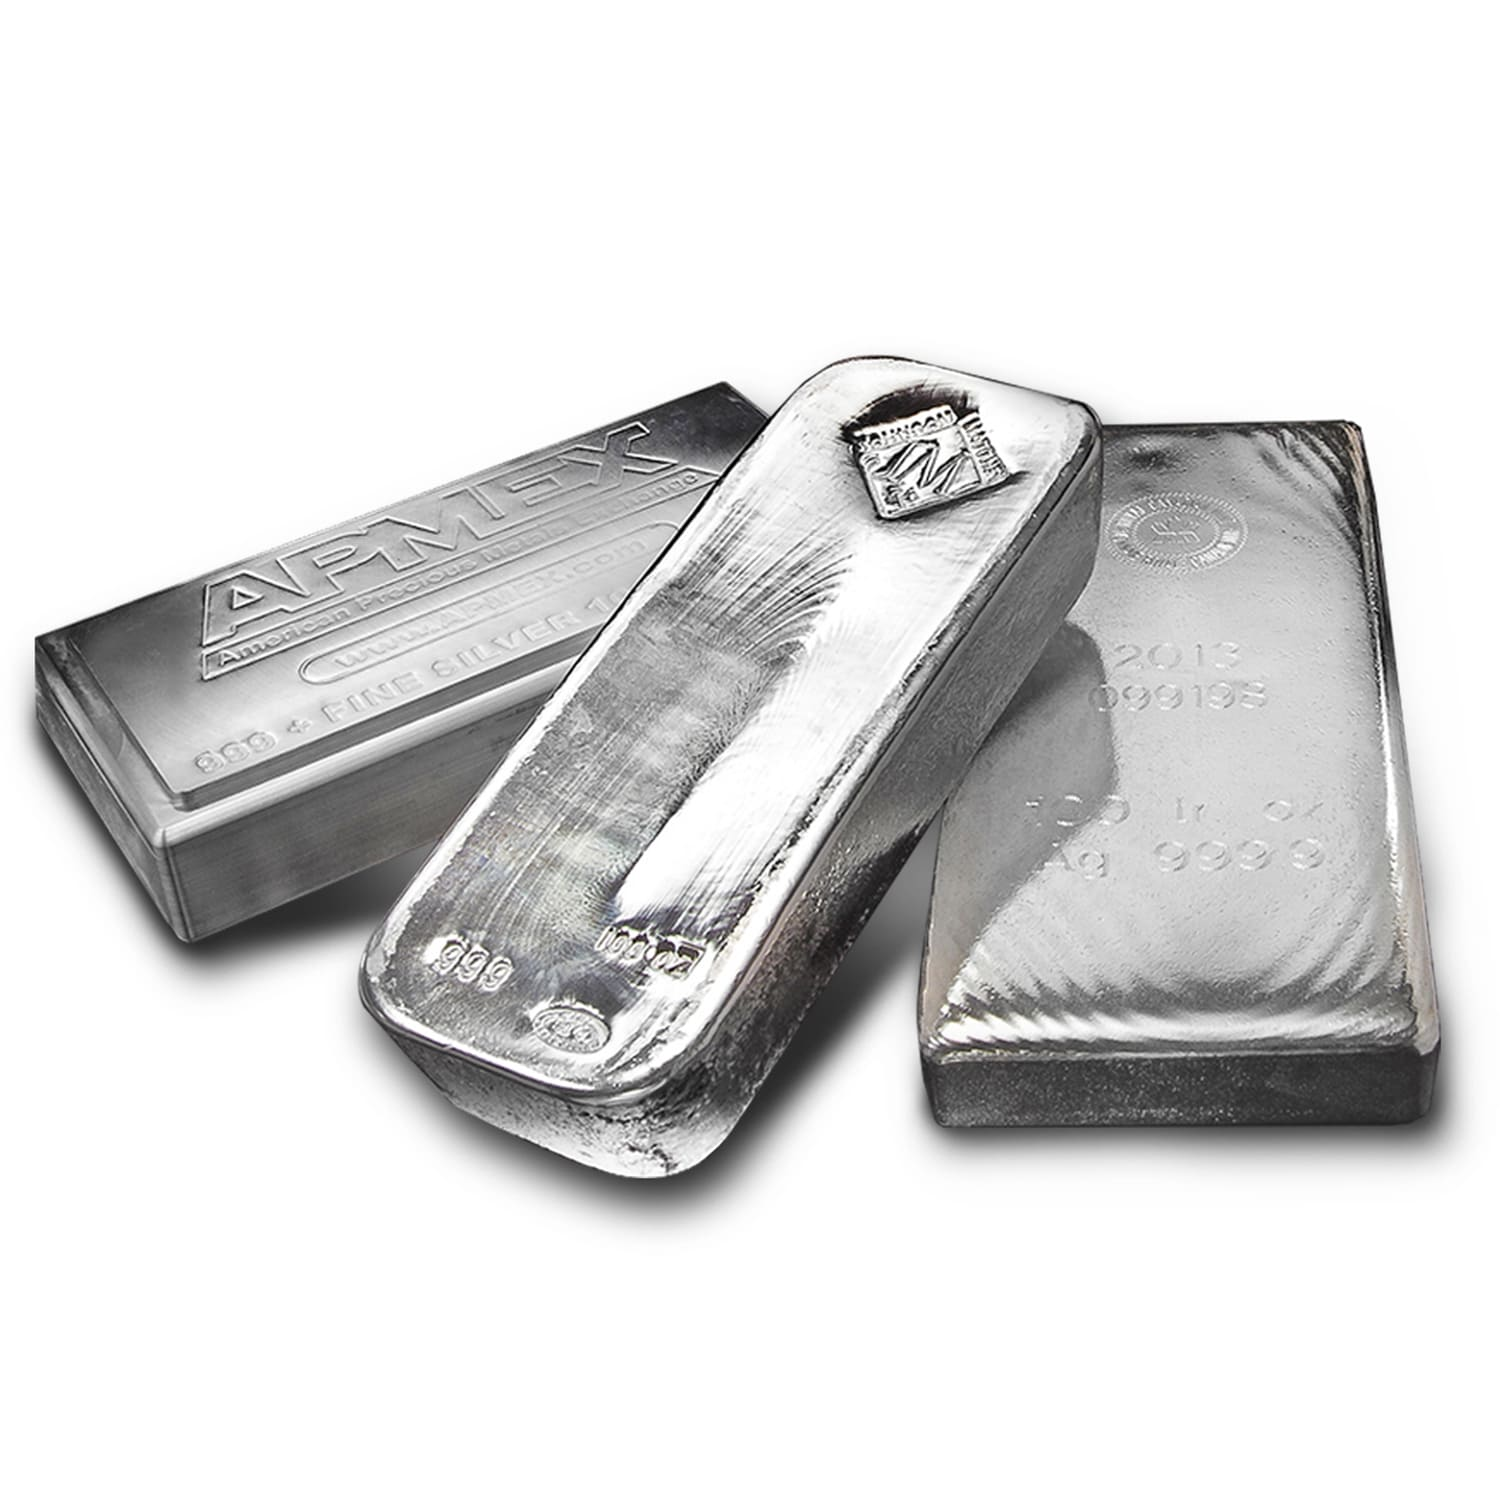 100.85 oz Silver Bar - Secondary Market